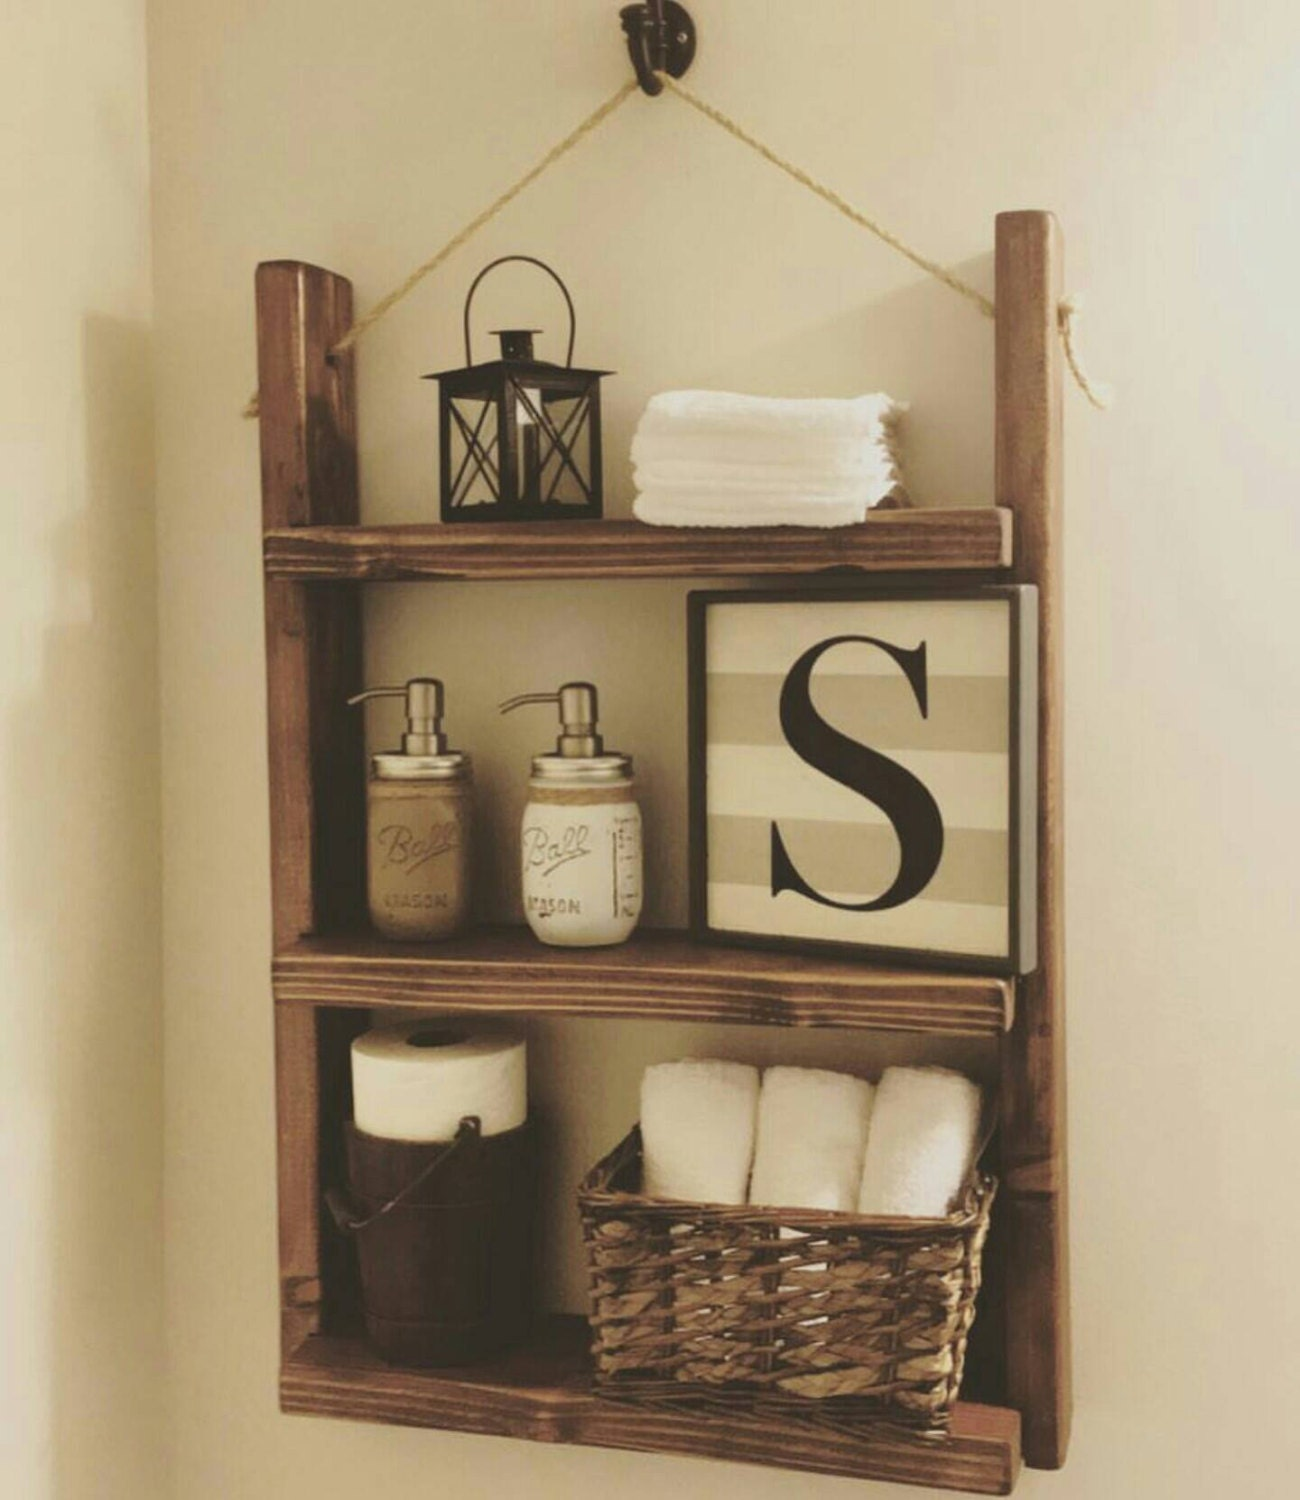 Rustic bathroom shelf farmhouse decor bathroom by for Rustic farmhouse bathroom ideas